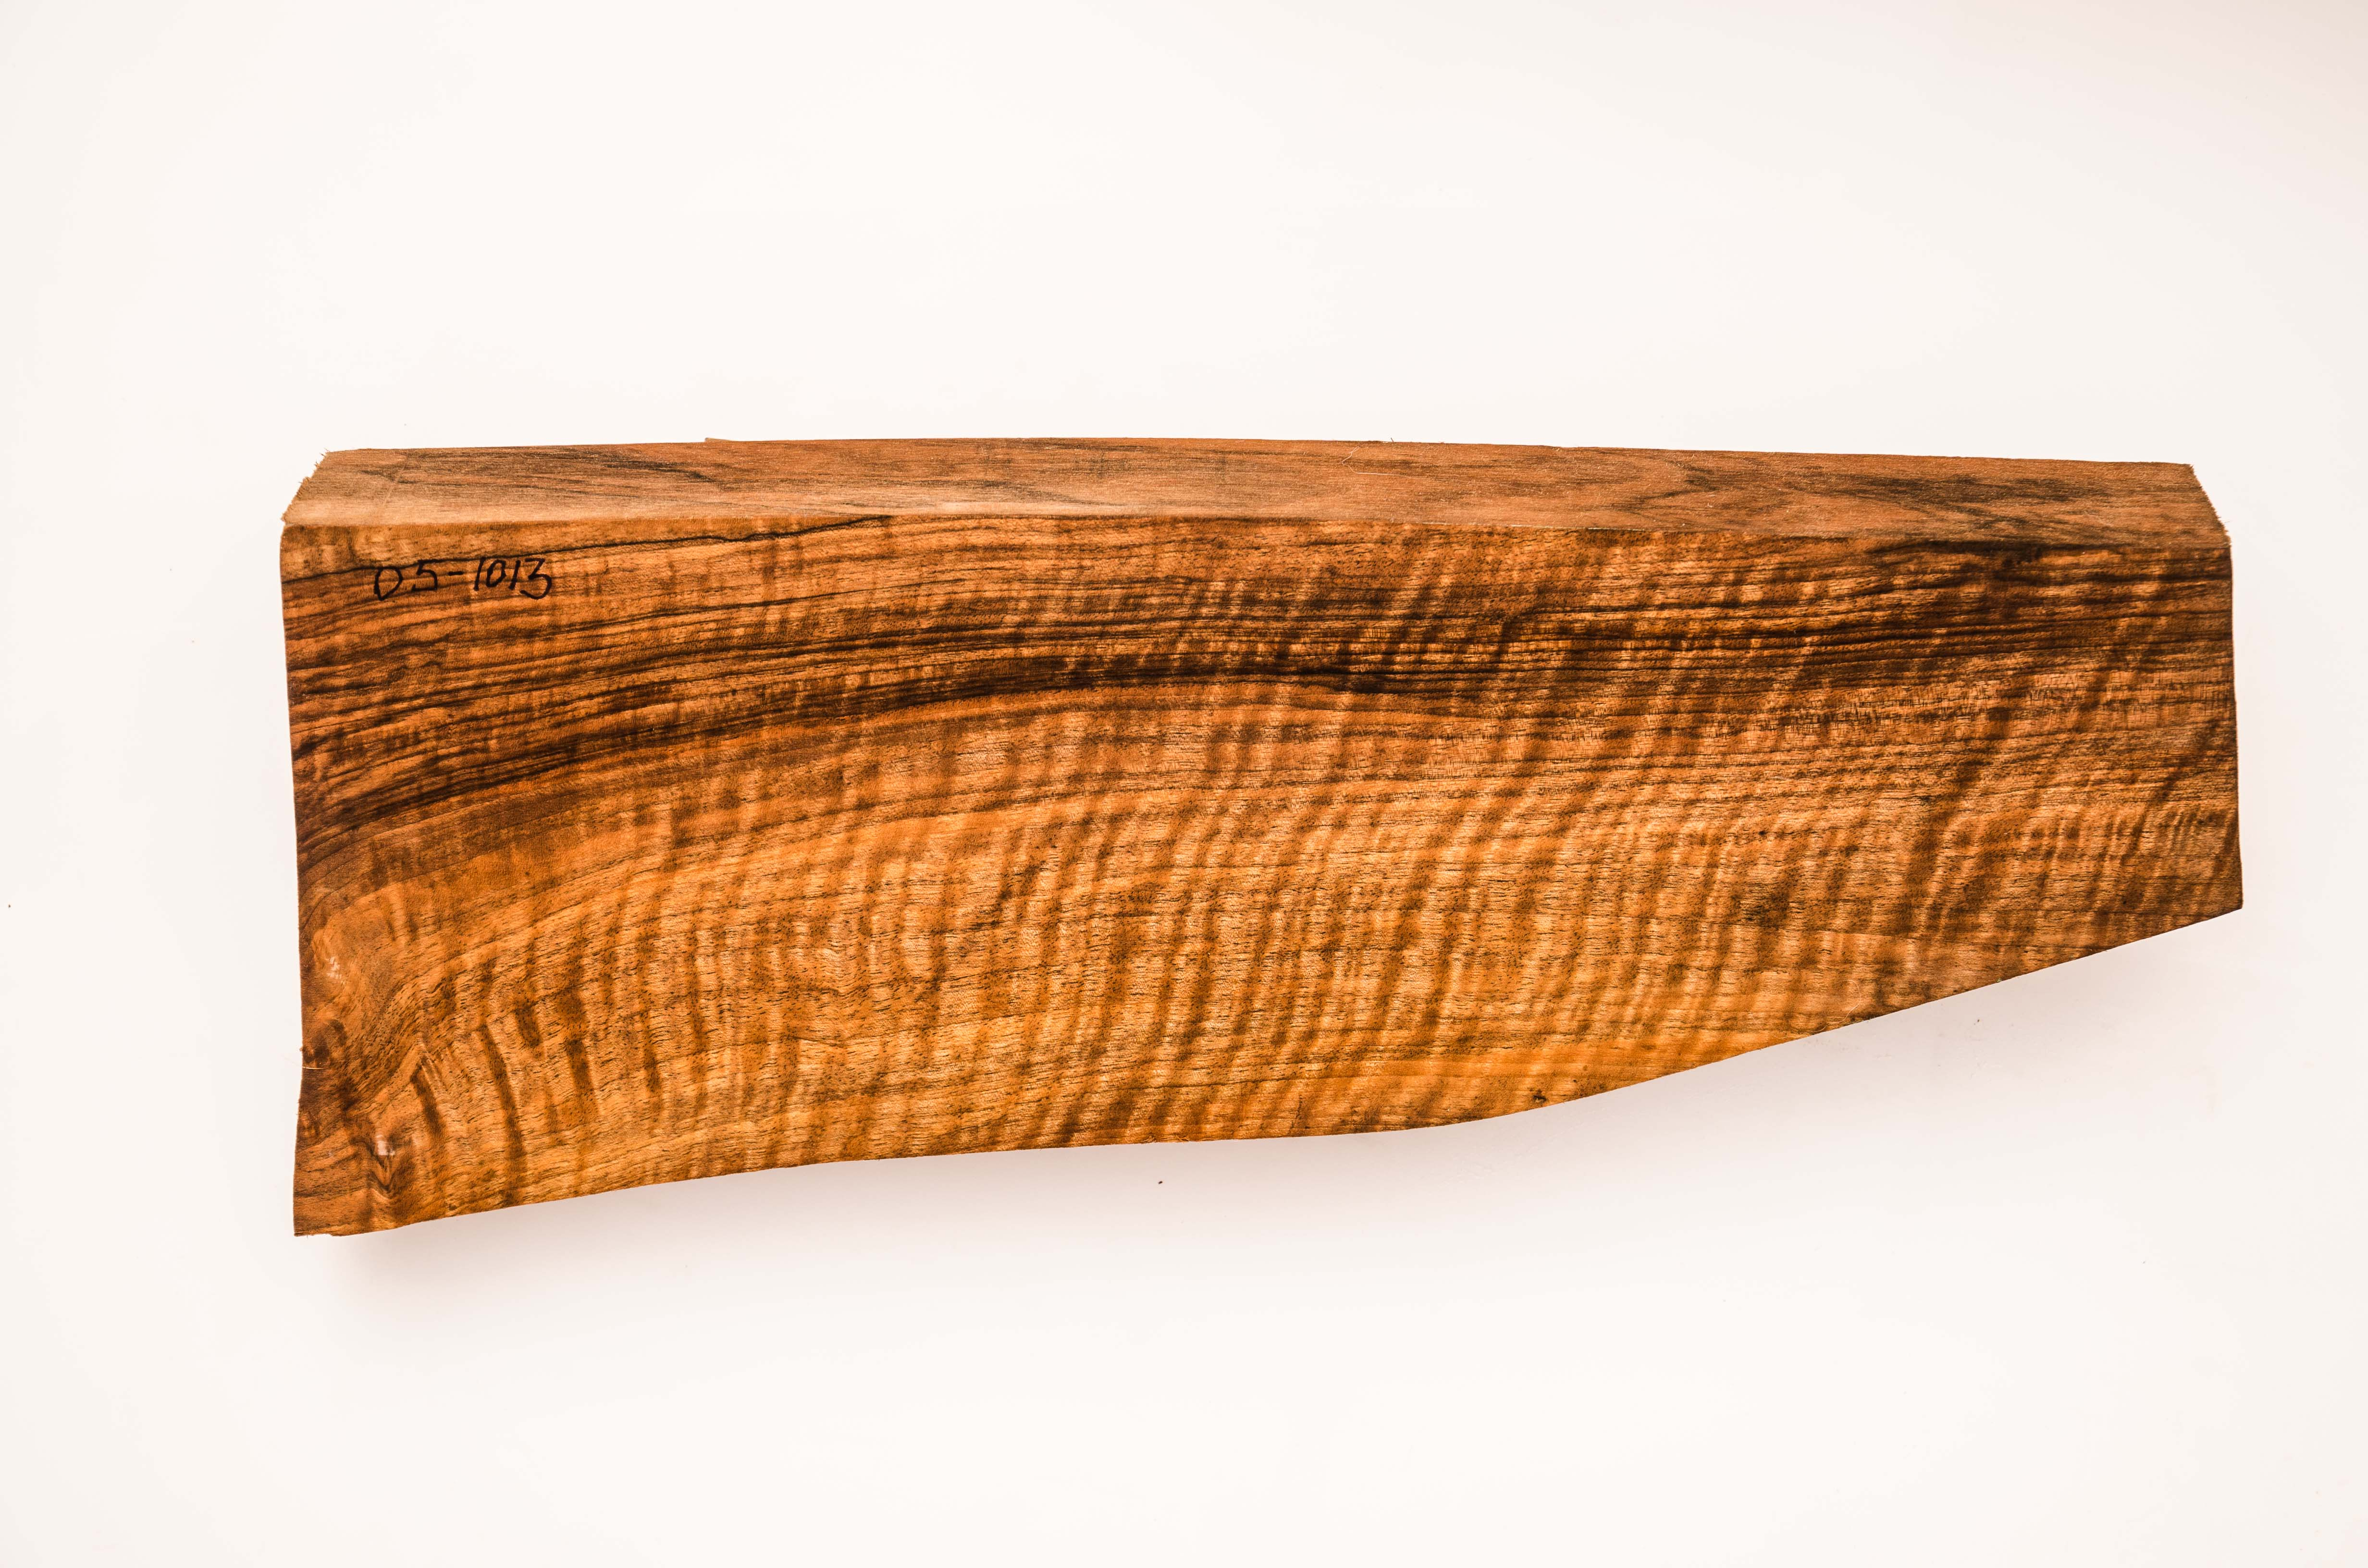 walnut_stock_blanks_for_guns_and_rifles-0592